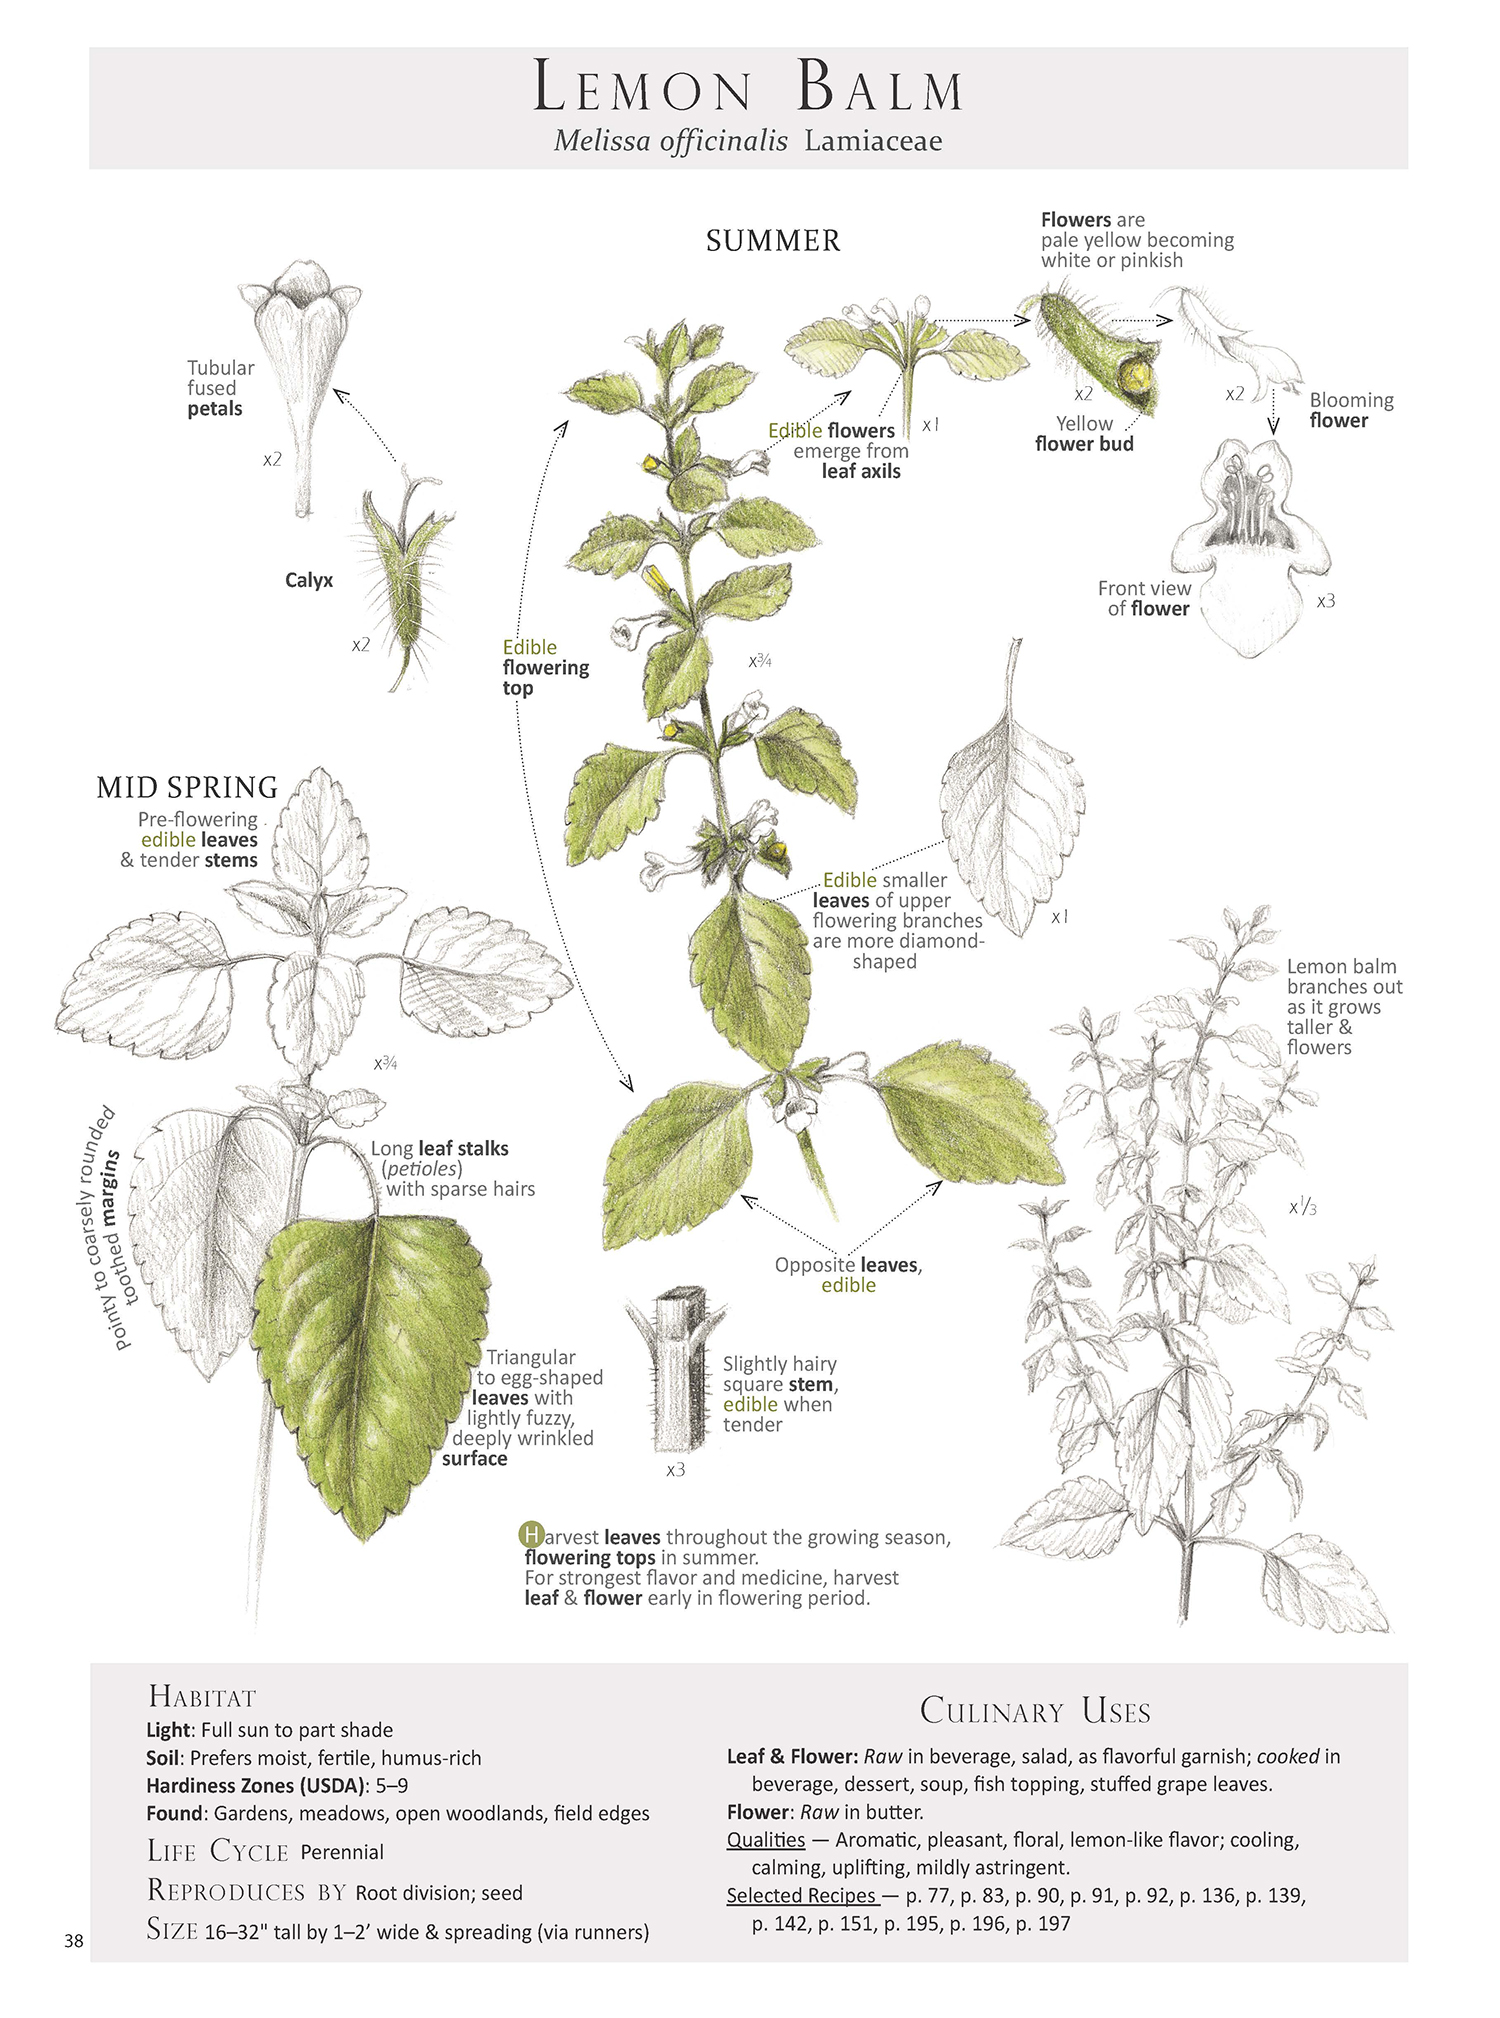 To help with id, harvest and use here is the lemon balm plant map from our book Foraging & Feasting: A Field Guide and Wild Food Cookbook by Dina Falconi, illustrated by Wendy Hollender. Book Link:  http://bit.ly/1Auh44Q